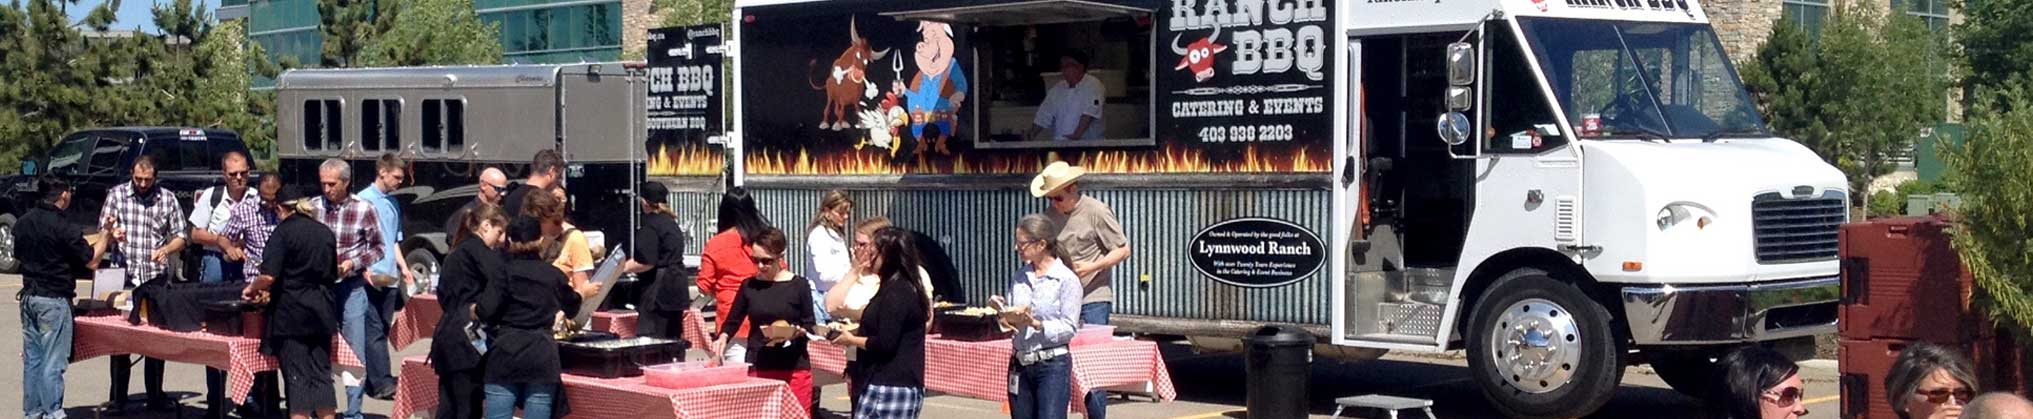 Ranch BBQ Calgary Mobile Catering Food Truck